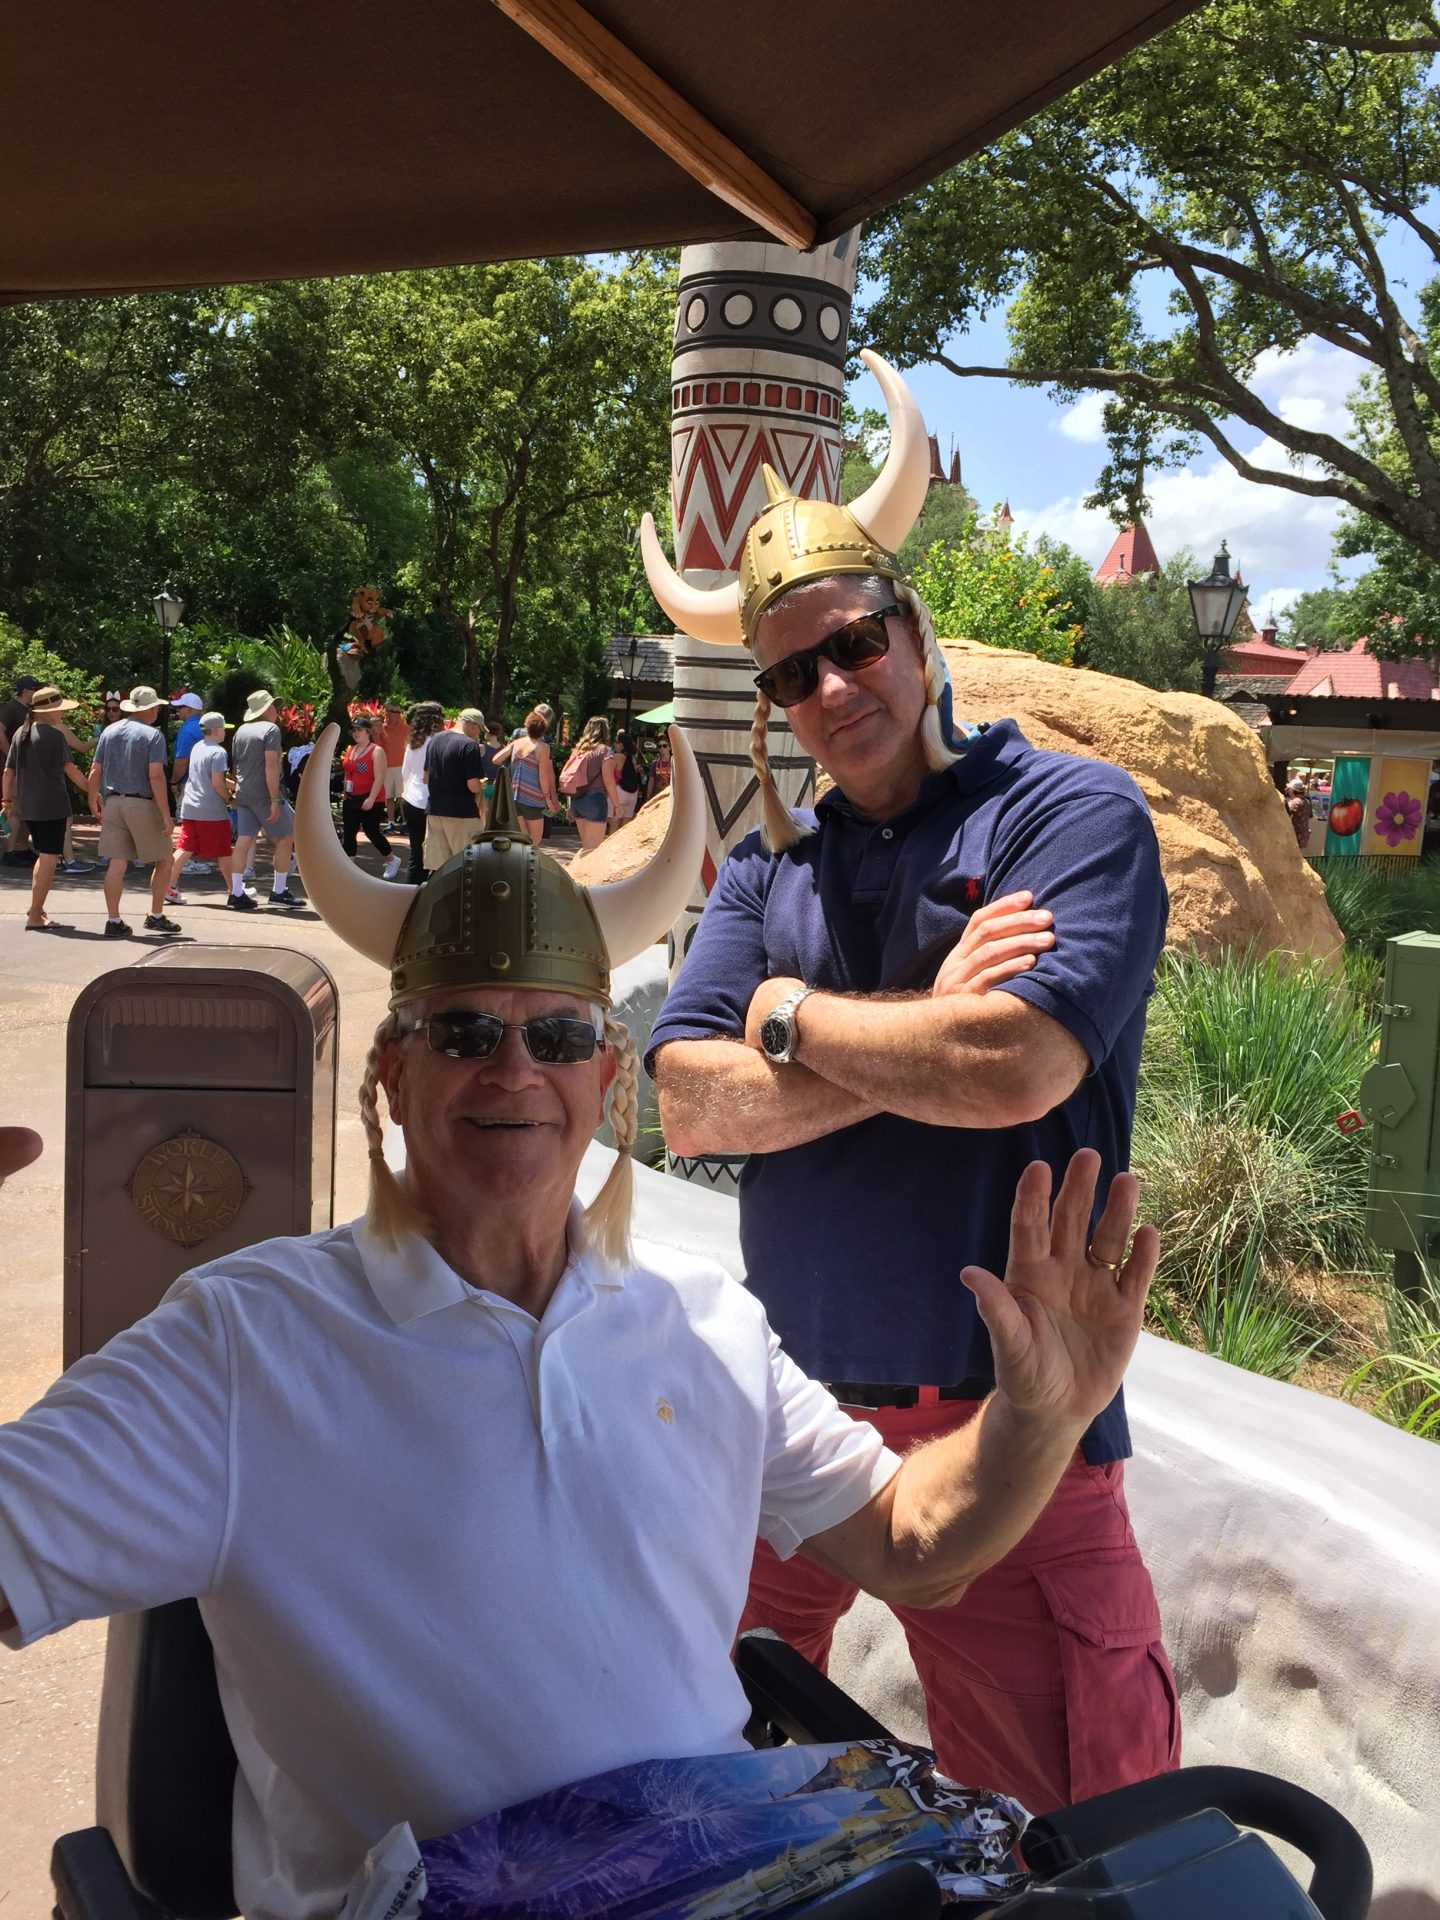 Just another normal day hanging out with Papa Rog at Epcot center - You were an amazing man, great father in law and honorary Viking for a day!